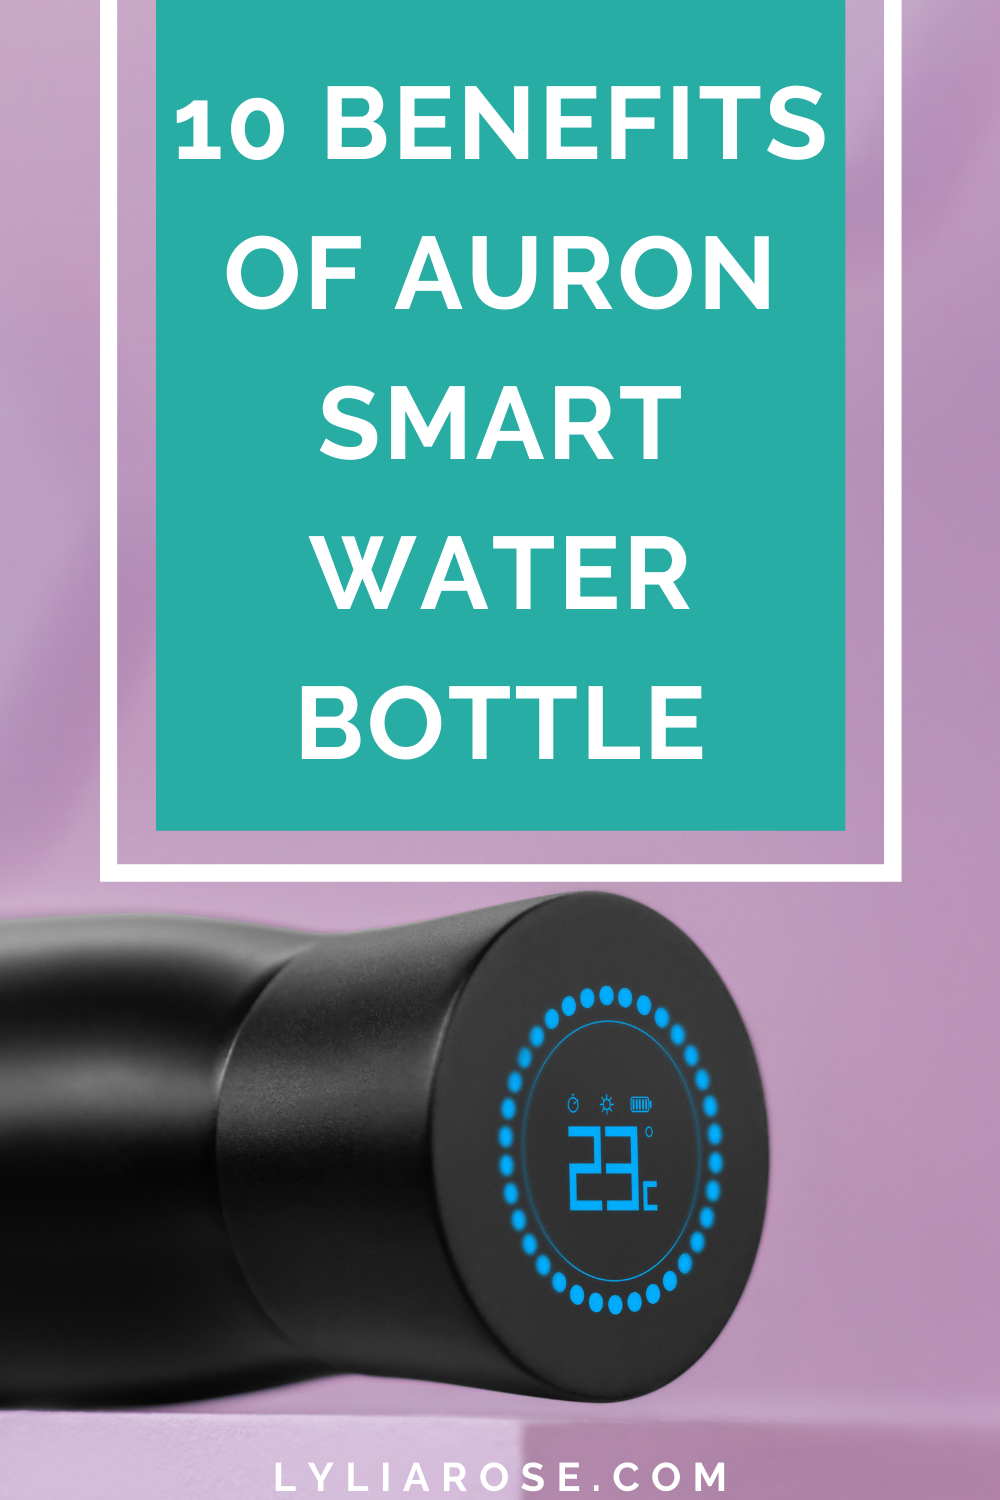 Auron self cleaning water bottle review